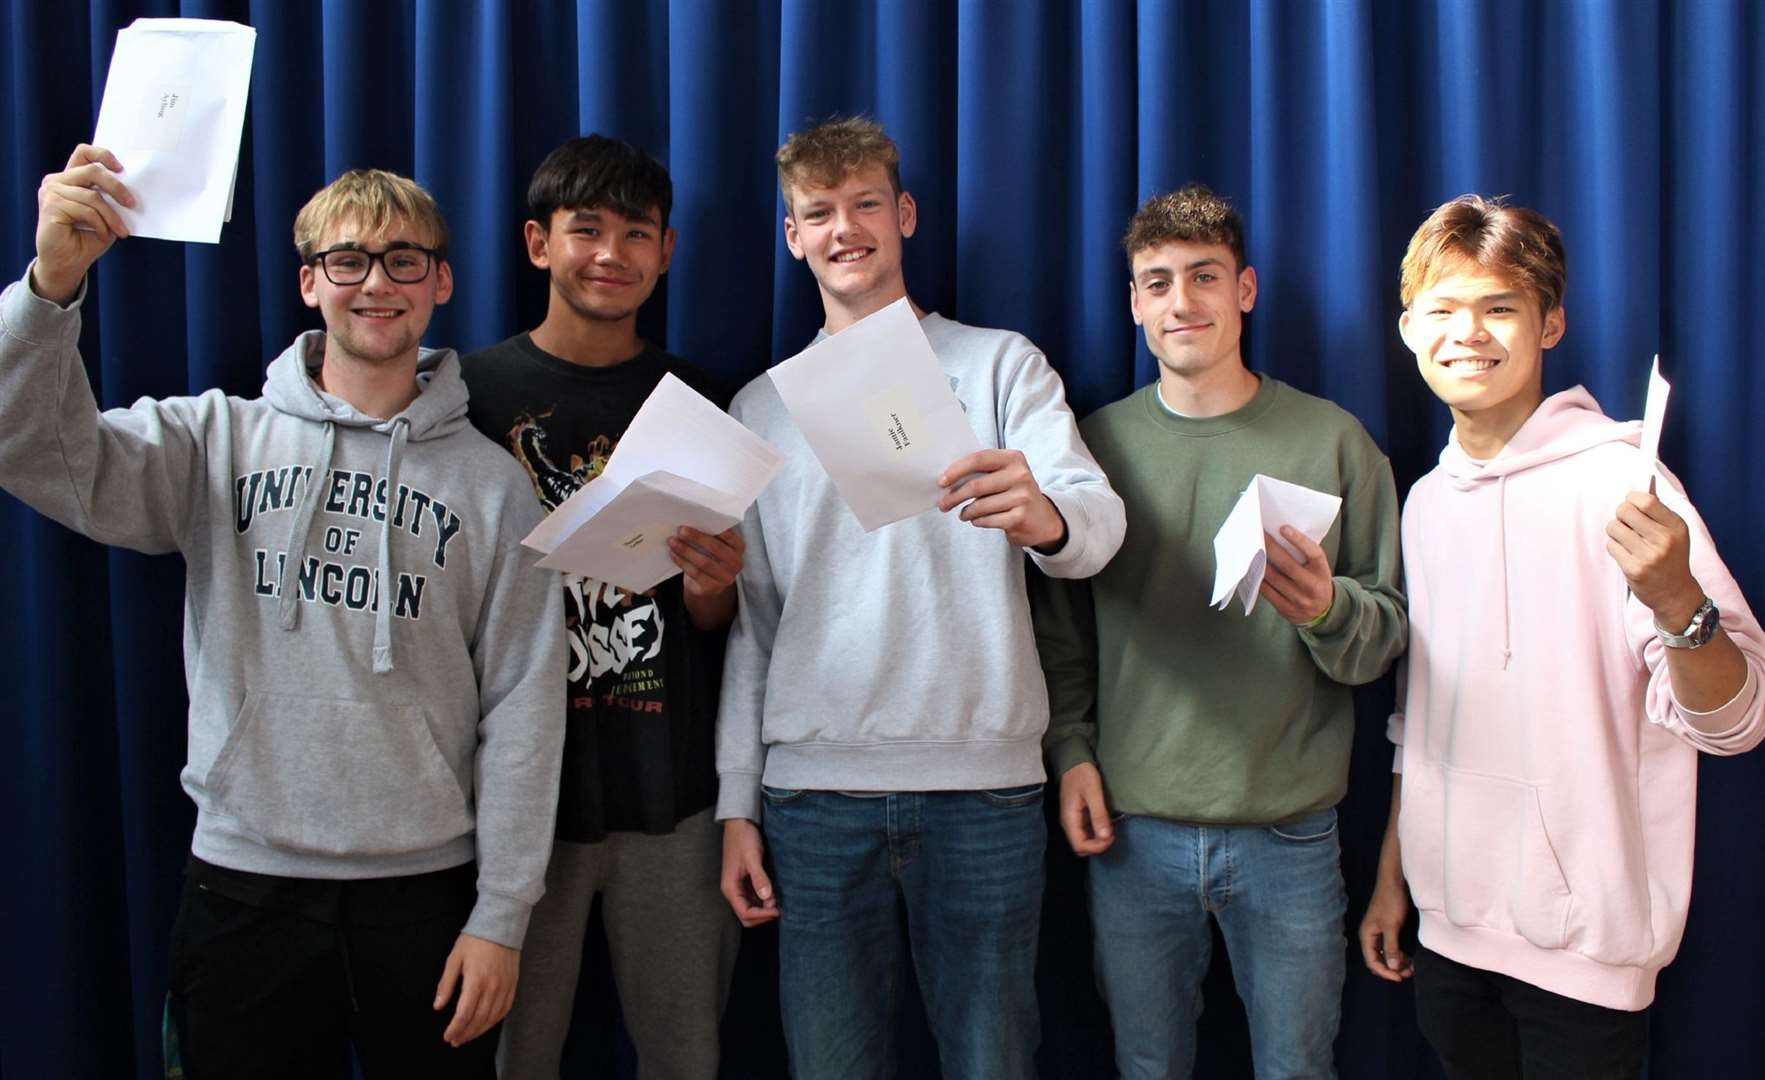 Attleborough Academy Norfolk students receive their results.